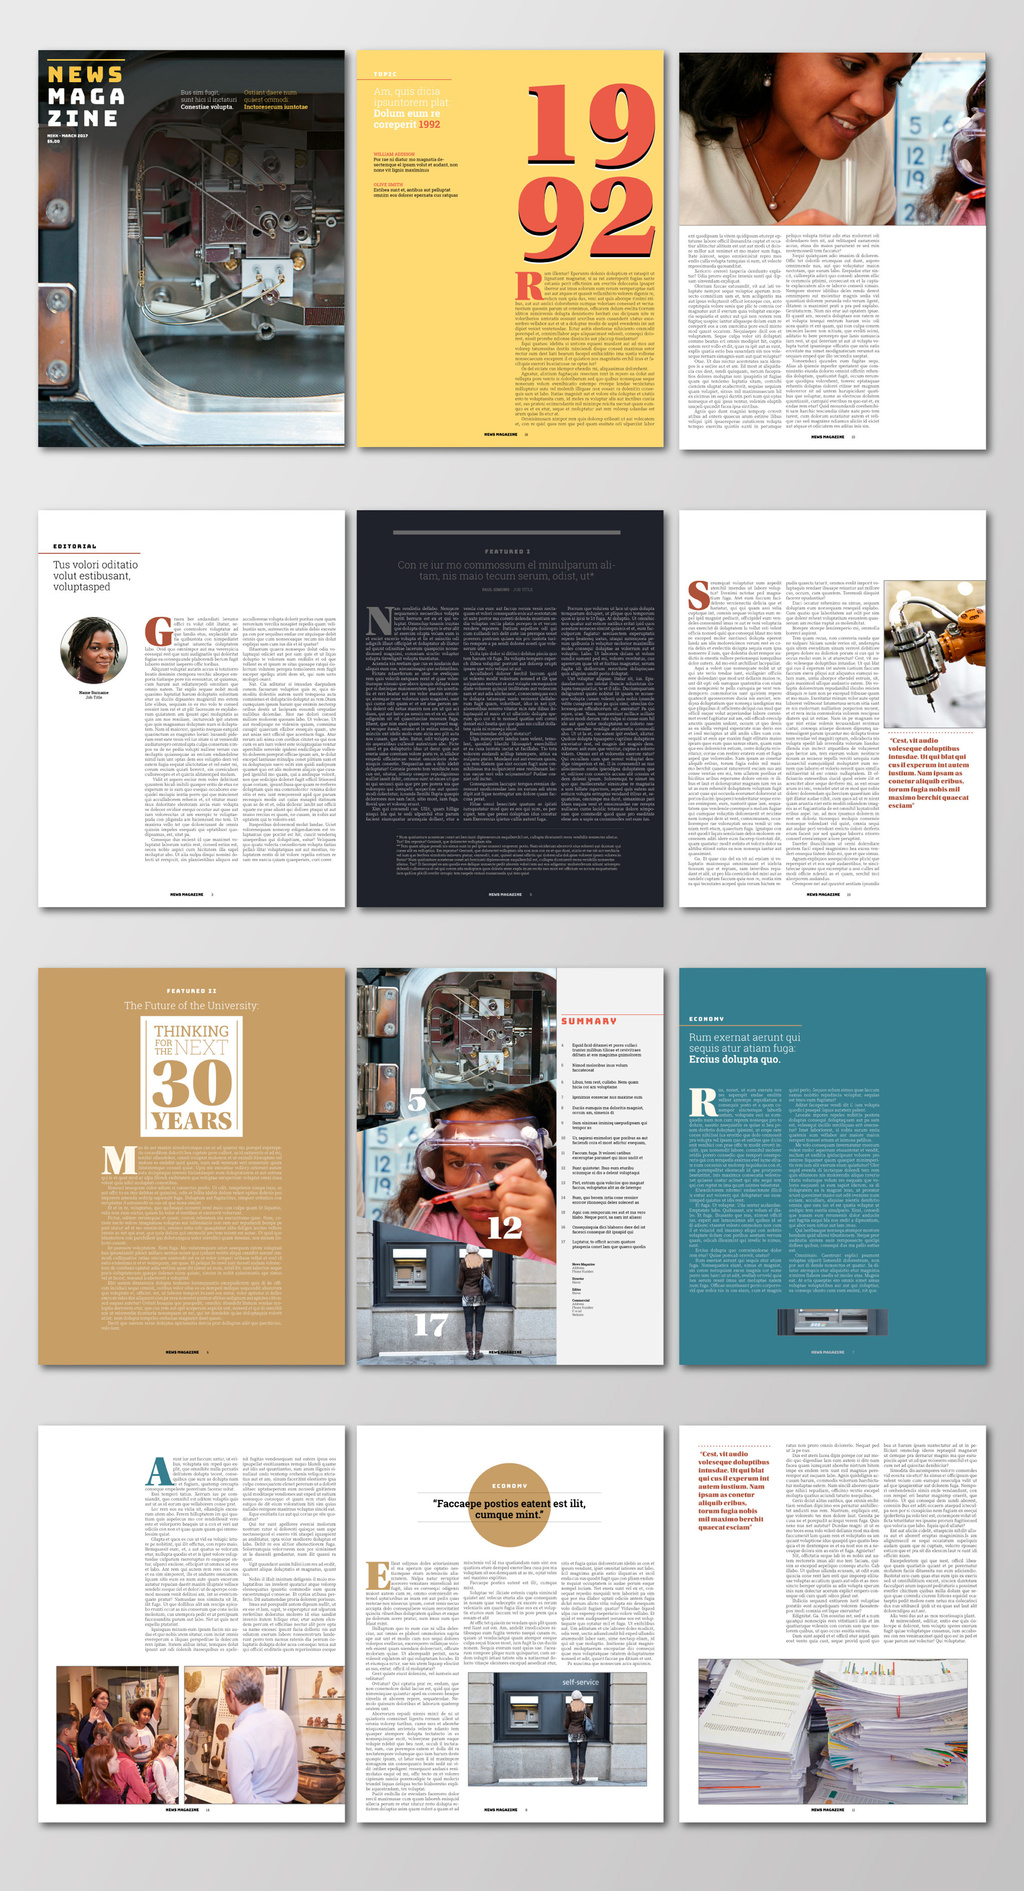 Free indesign magazine templates design magazine logo typo free indesign magazine templates creative cloud blog by adobe maxwellsz